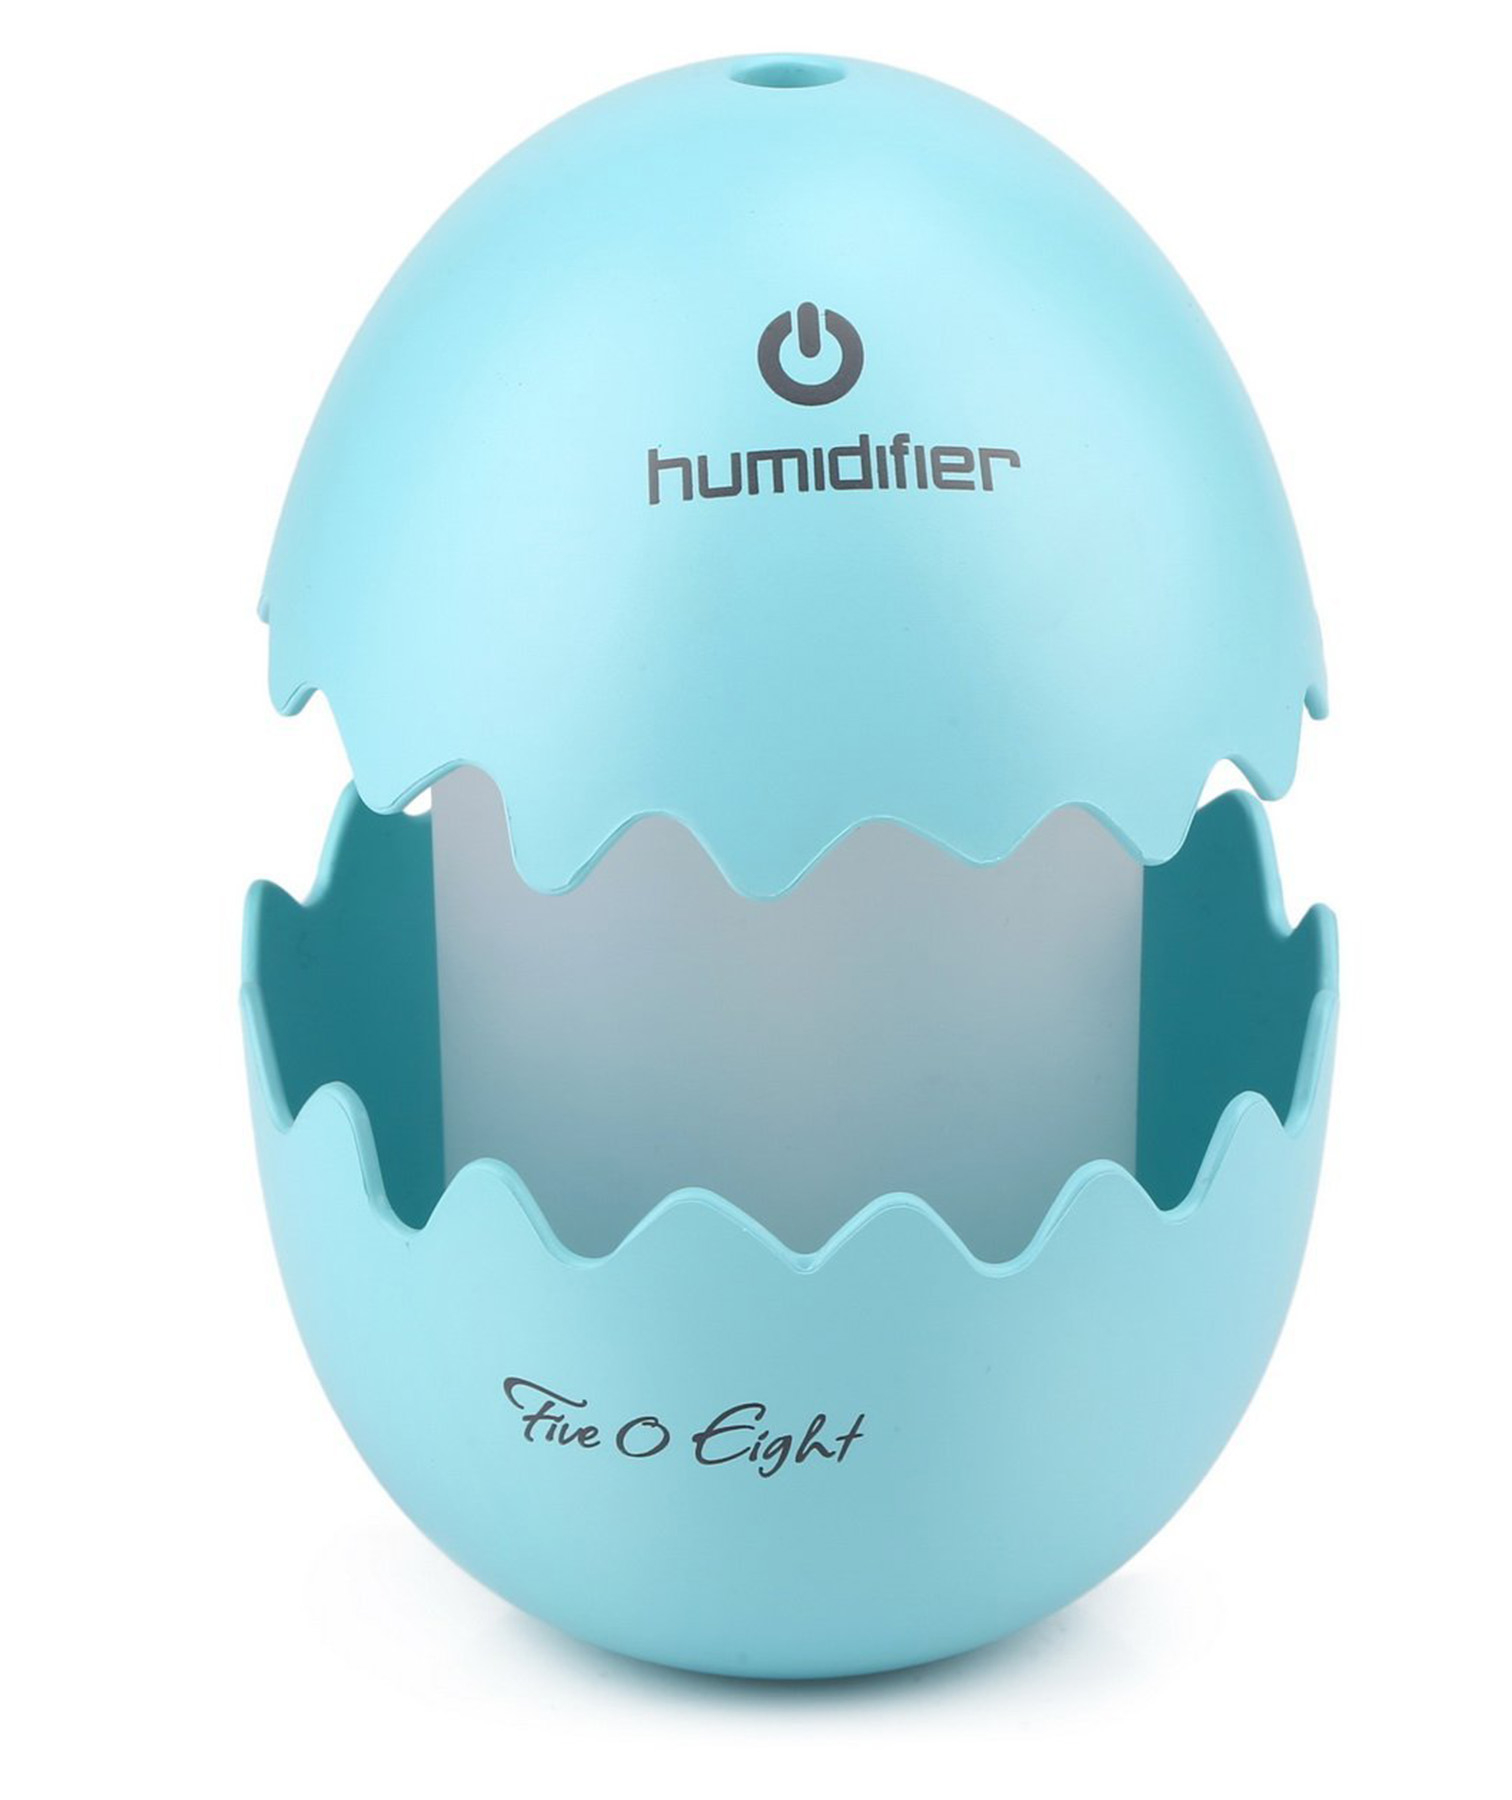 Egg Humidifier in blue